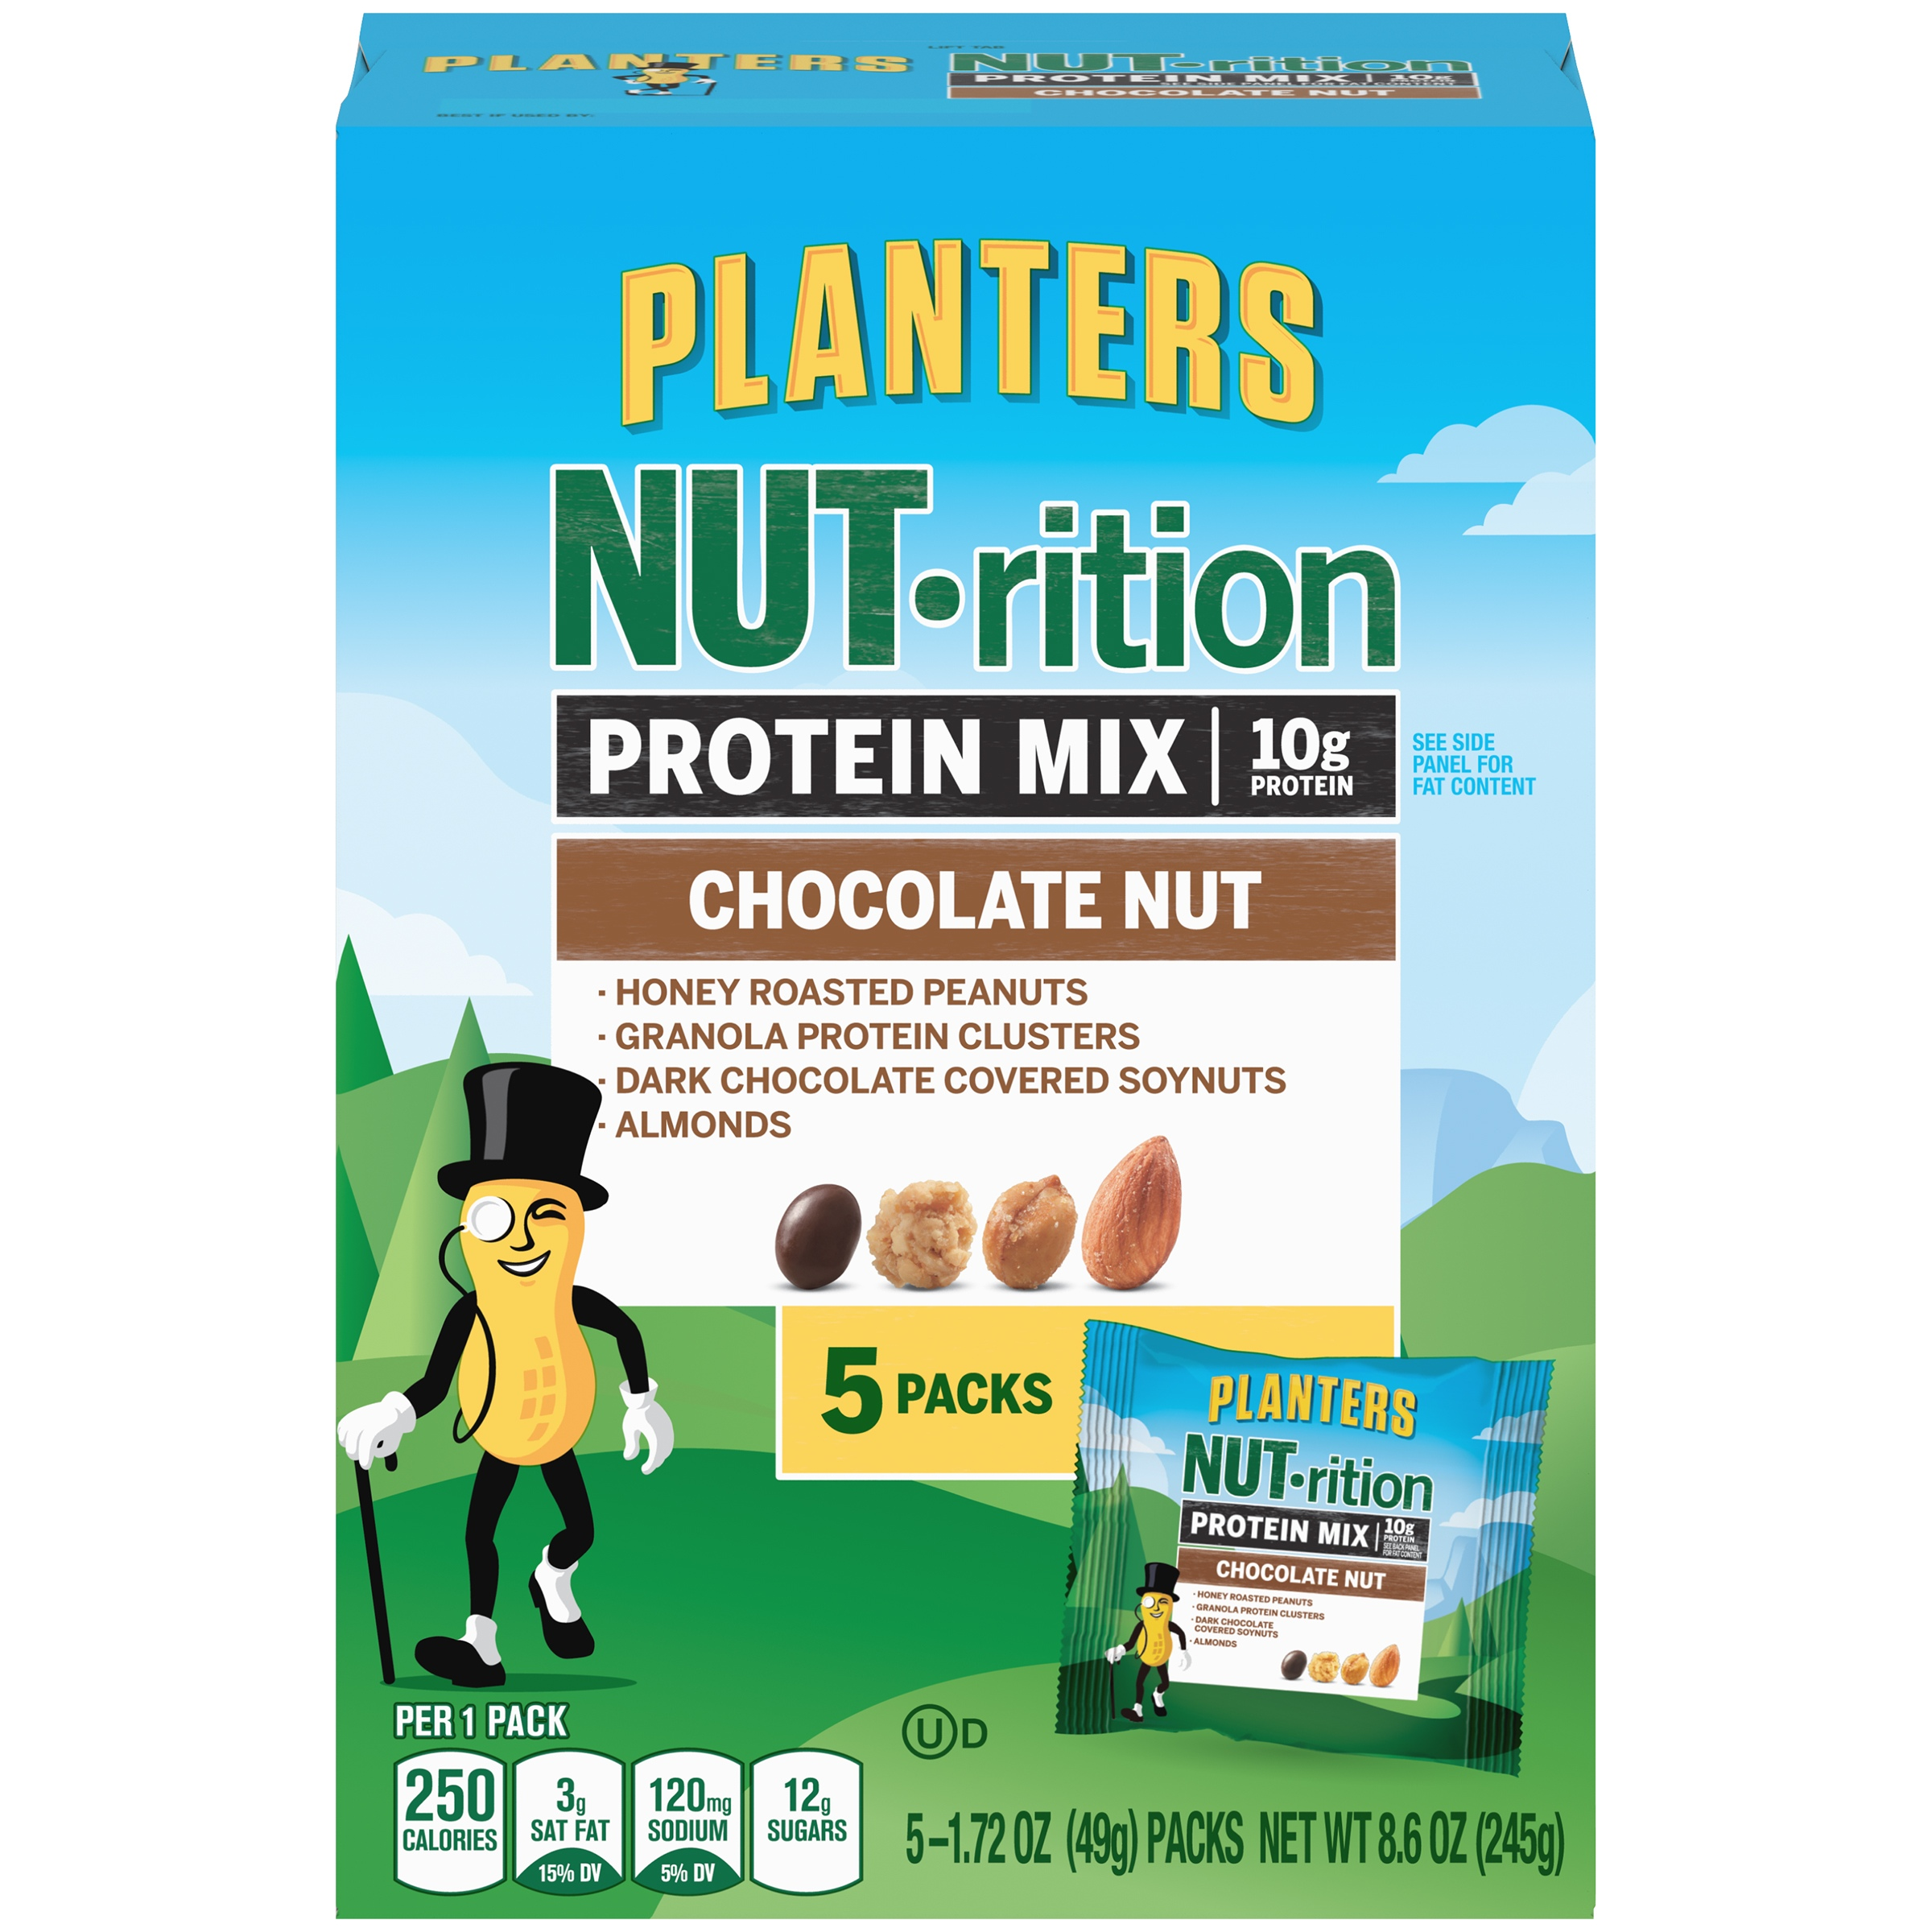 Planters NUT-rition Chocolate Nut Protein Mix 5-1.72 oz. Bags